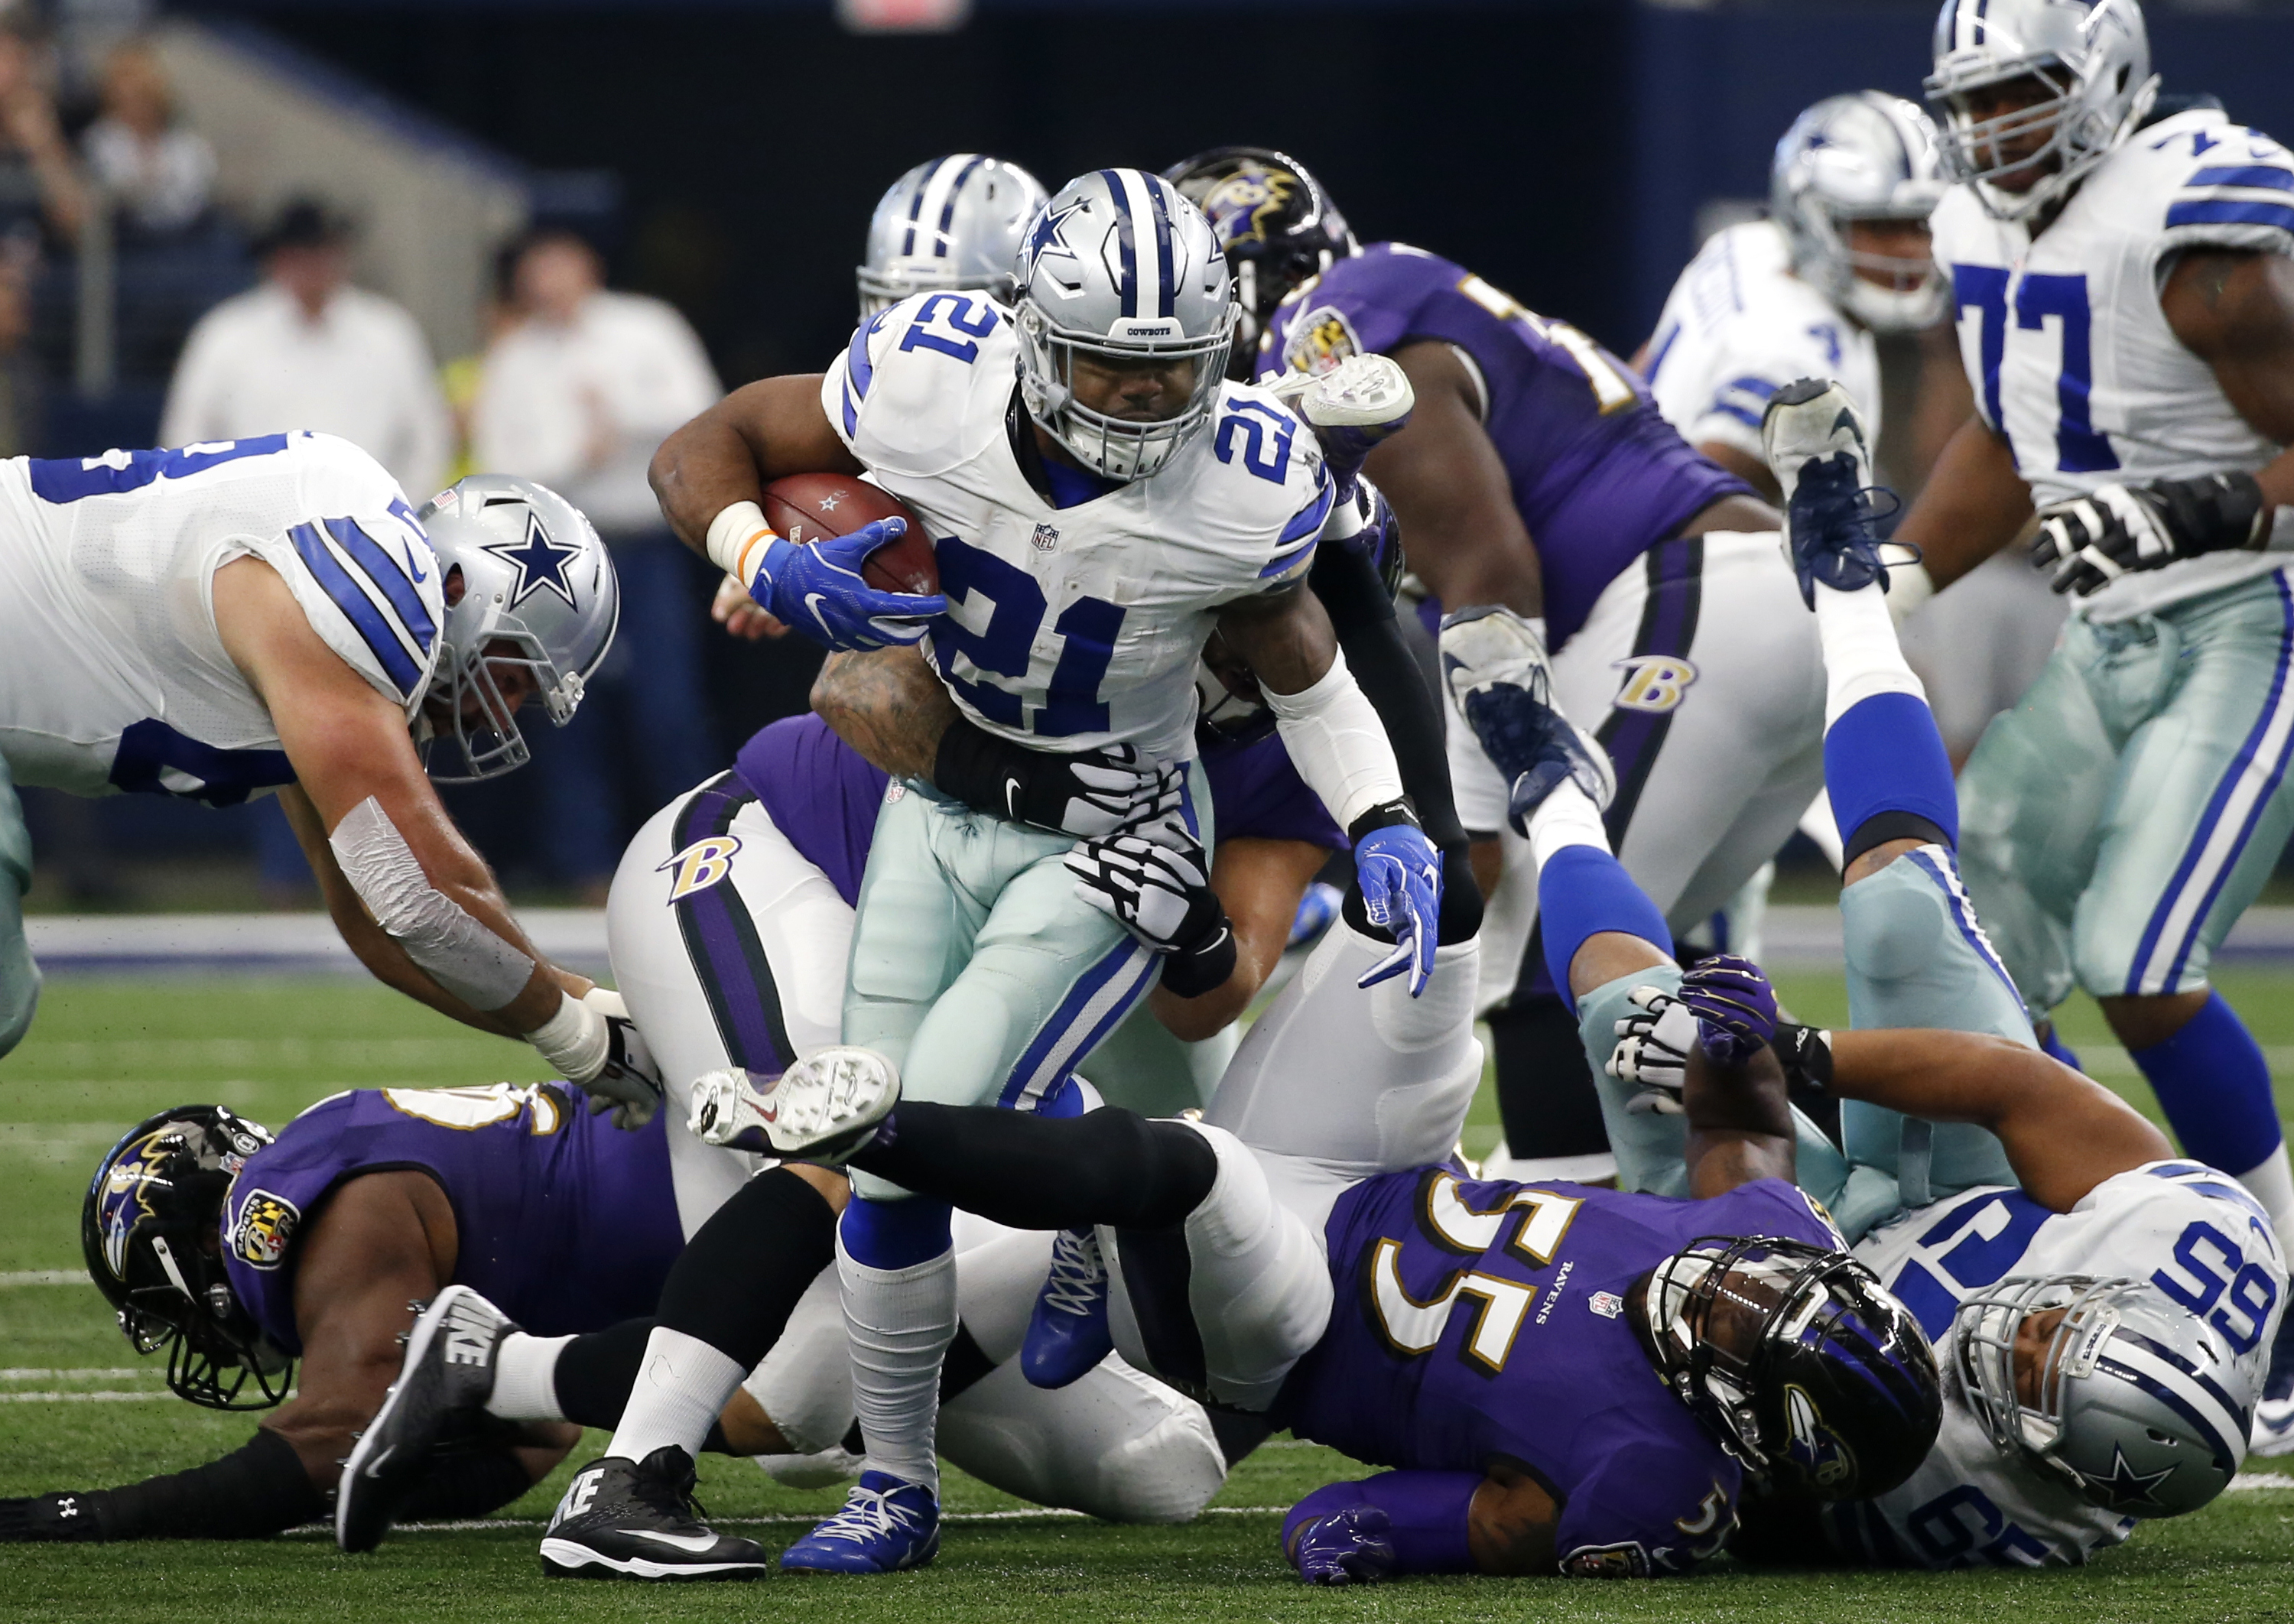 Dallas Cowboys running back Ezekiel Elliott (21) carries the ball as Baltimore Ravens' Terrell Suggs (55) and others attempt the stop in the first half of an NFL football game, Sunday, Nov. 20, 2016, in Arlington, Texas. (AP Photo/Michael Ainsworth)